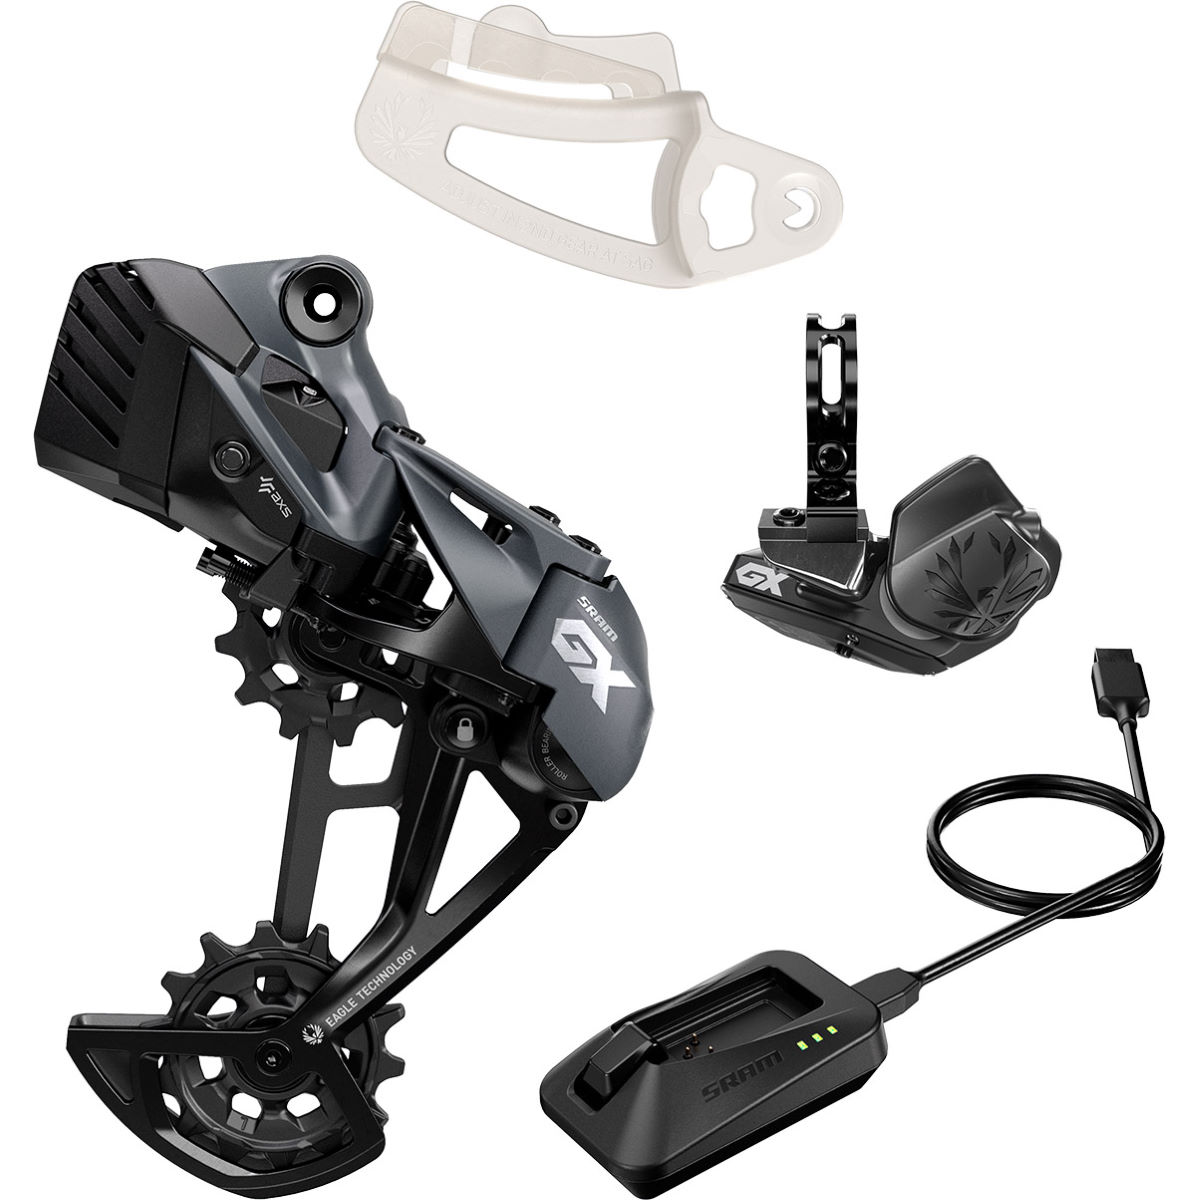 Sram Gx Eagle Axs Upgrade Kit - Up To 52t Lunar  Groupsets